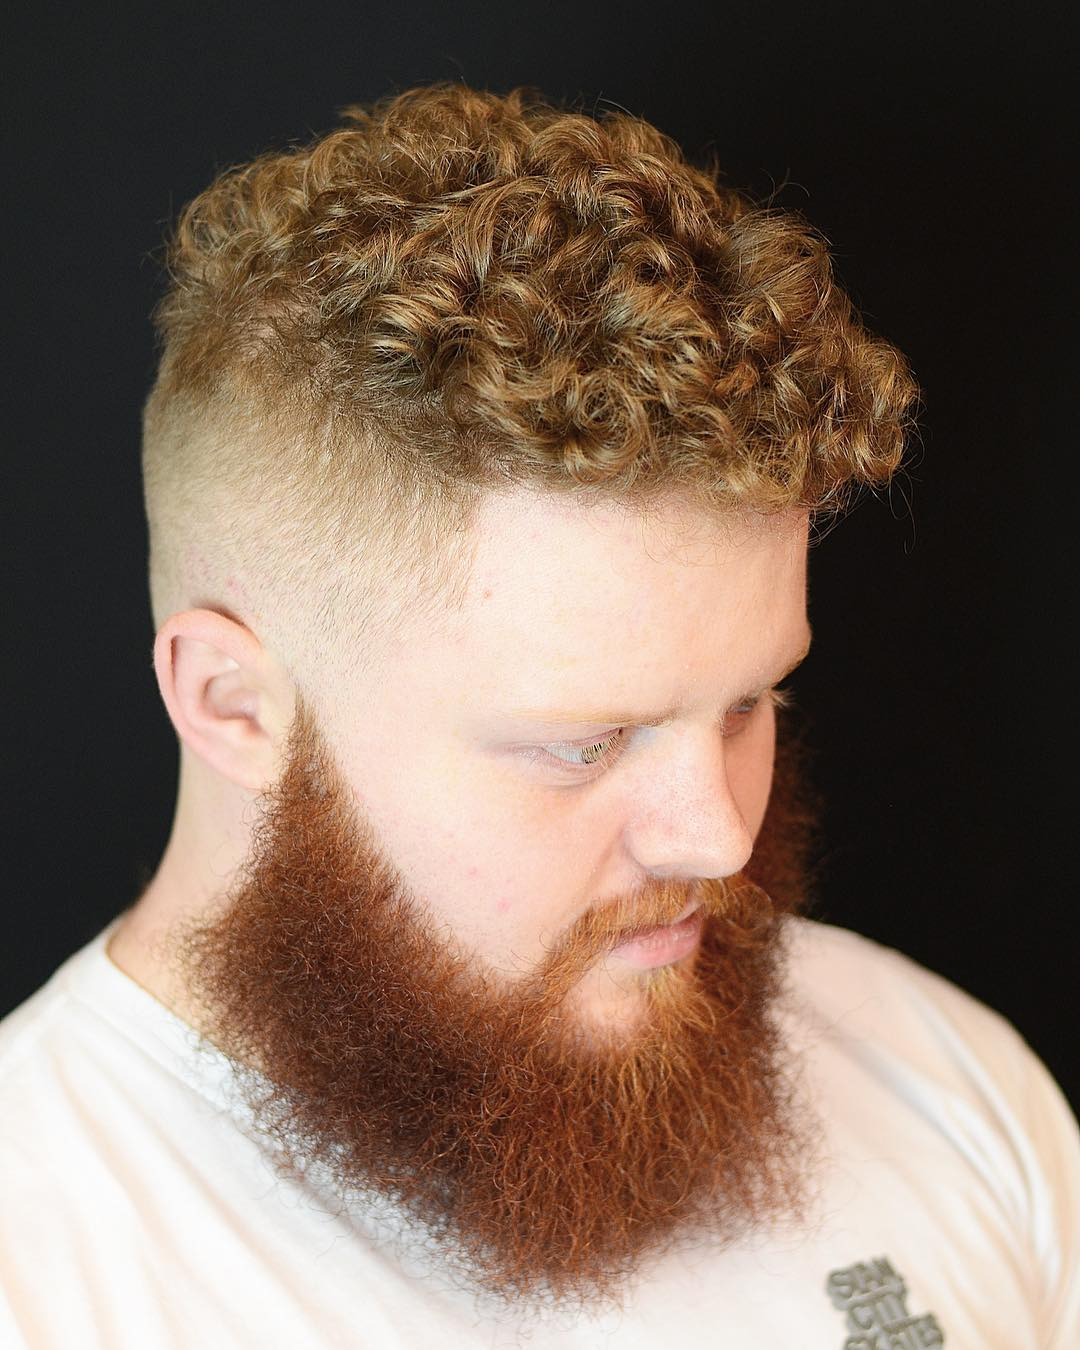 Curly Crop + Strong Beard